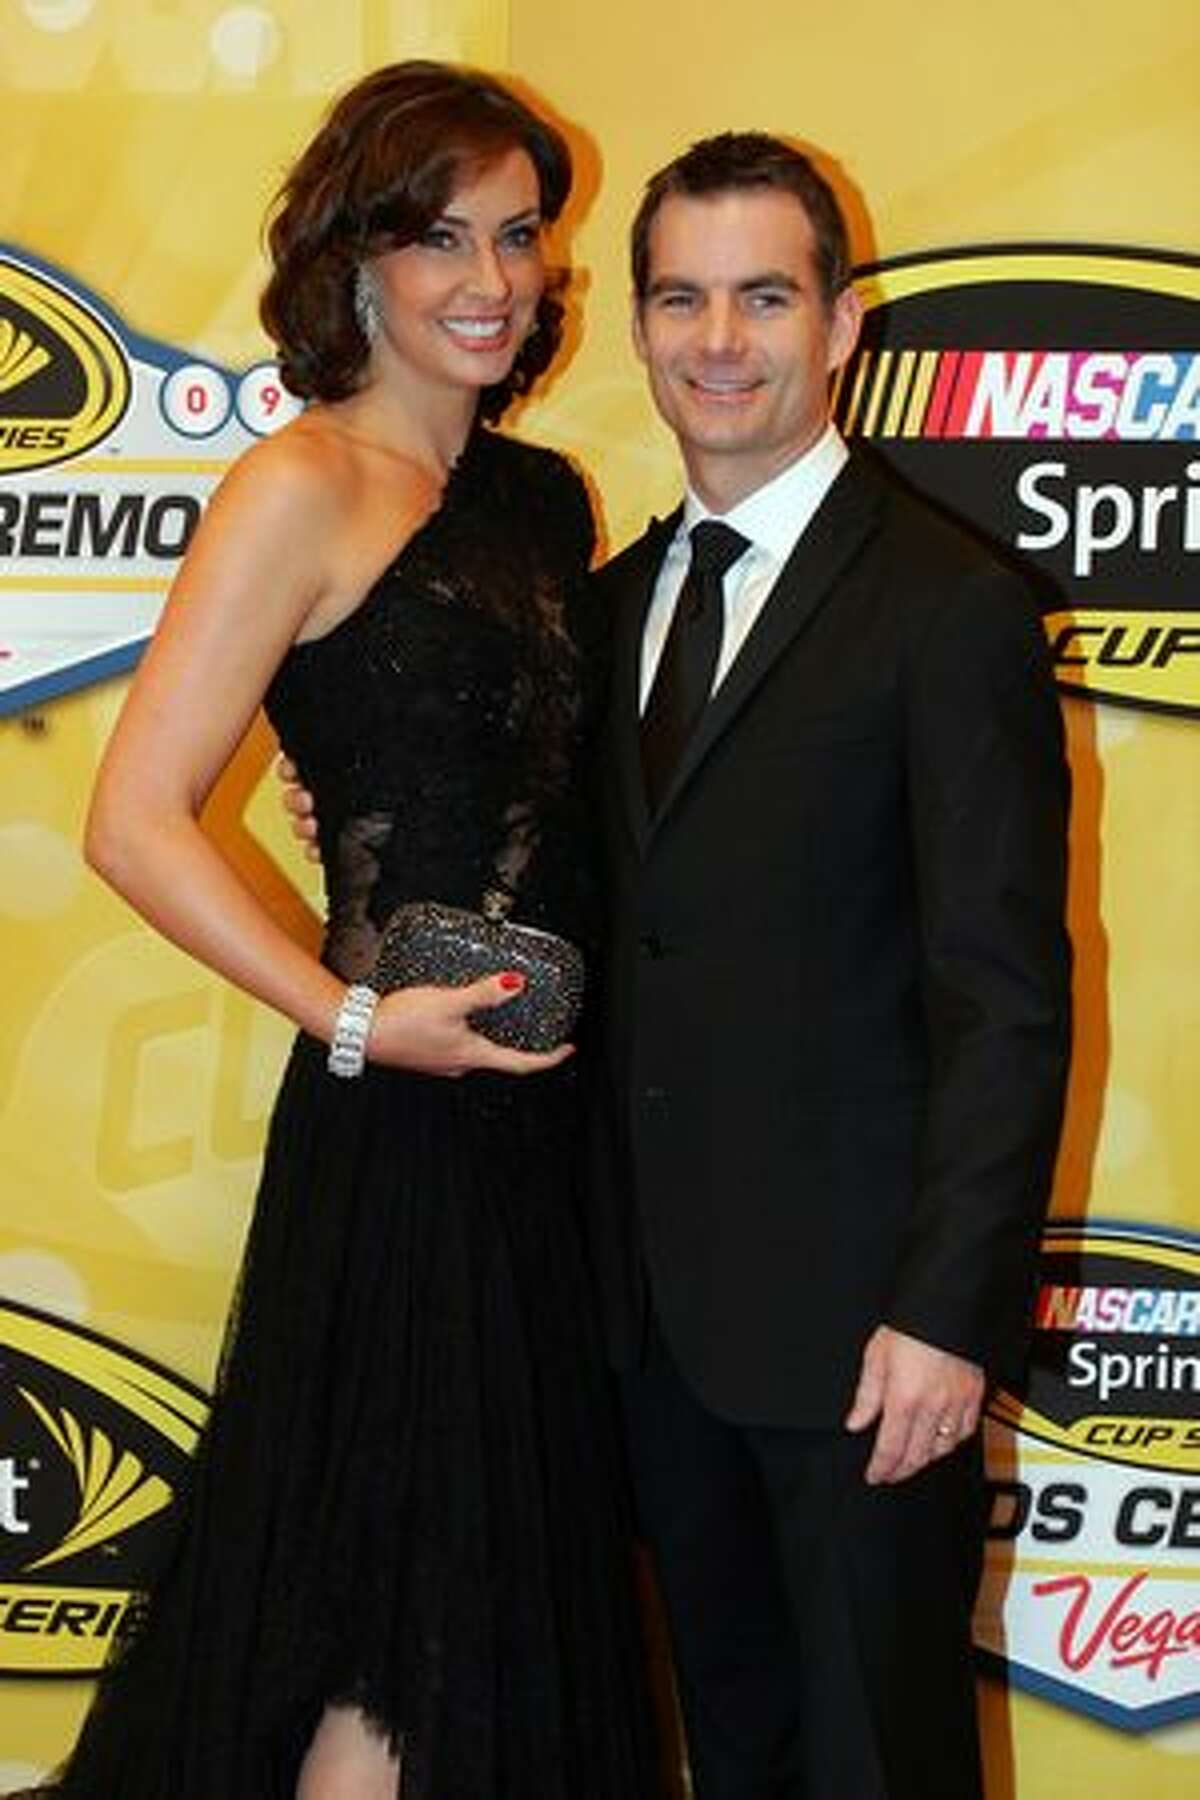 LAS VEGAS - DECEMBER 04: NASCAR driver Jeff Gordon (R) and his wife Ingrid Vandebosch pose on the red carpet for the NASCAR Sprint Cup Series awards banquet during the final day of the NASCAR Sprint Cup Series Champions Week on December 4, 2009 in Las Vegas, Nevada.